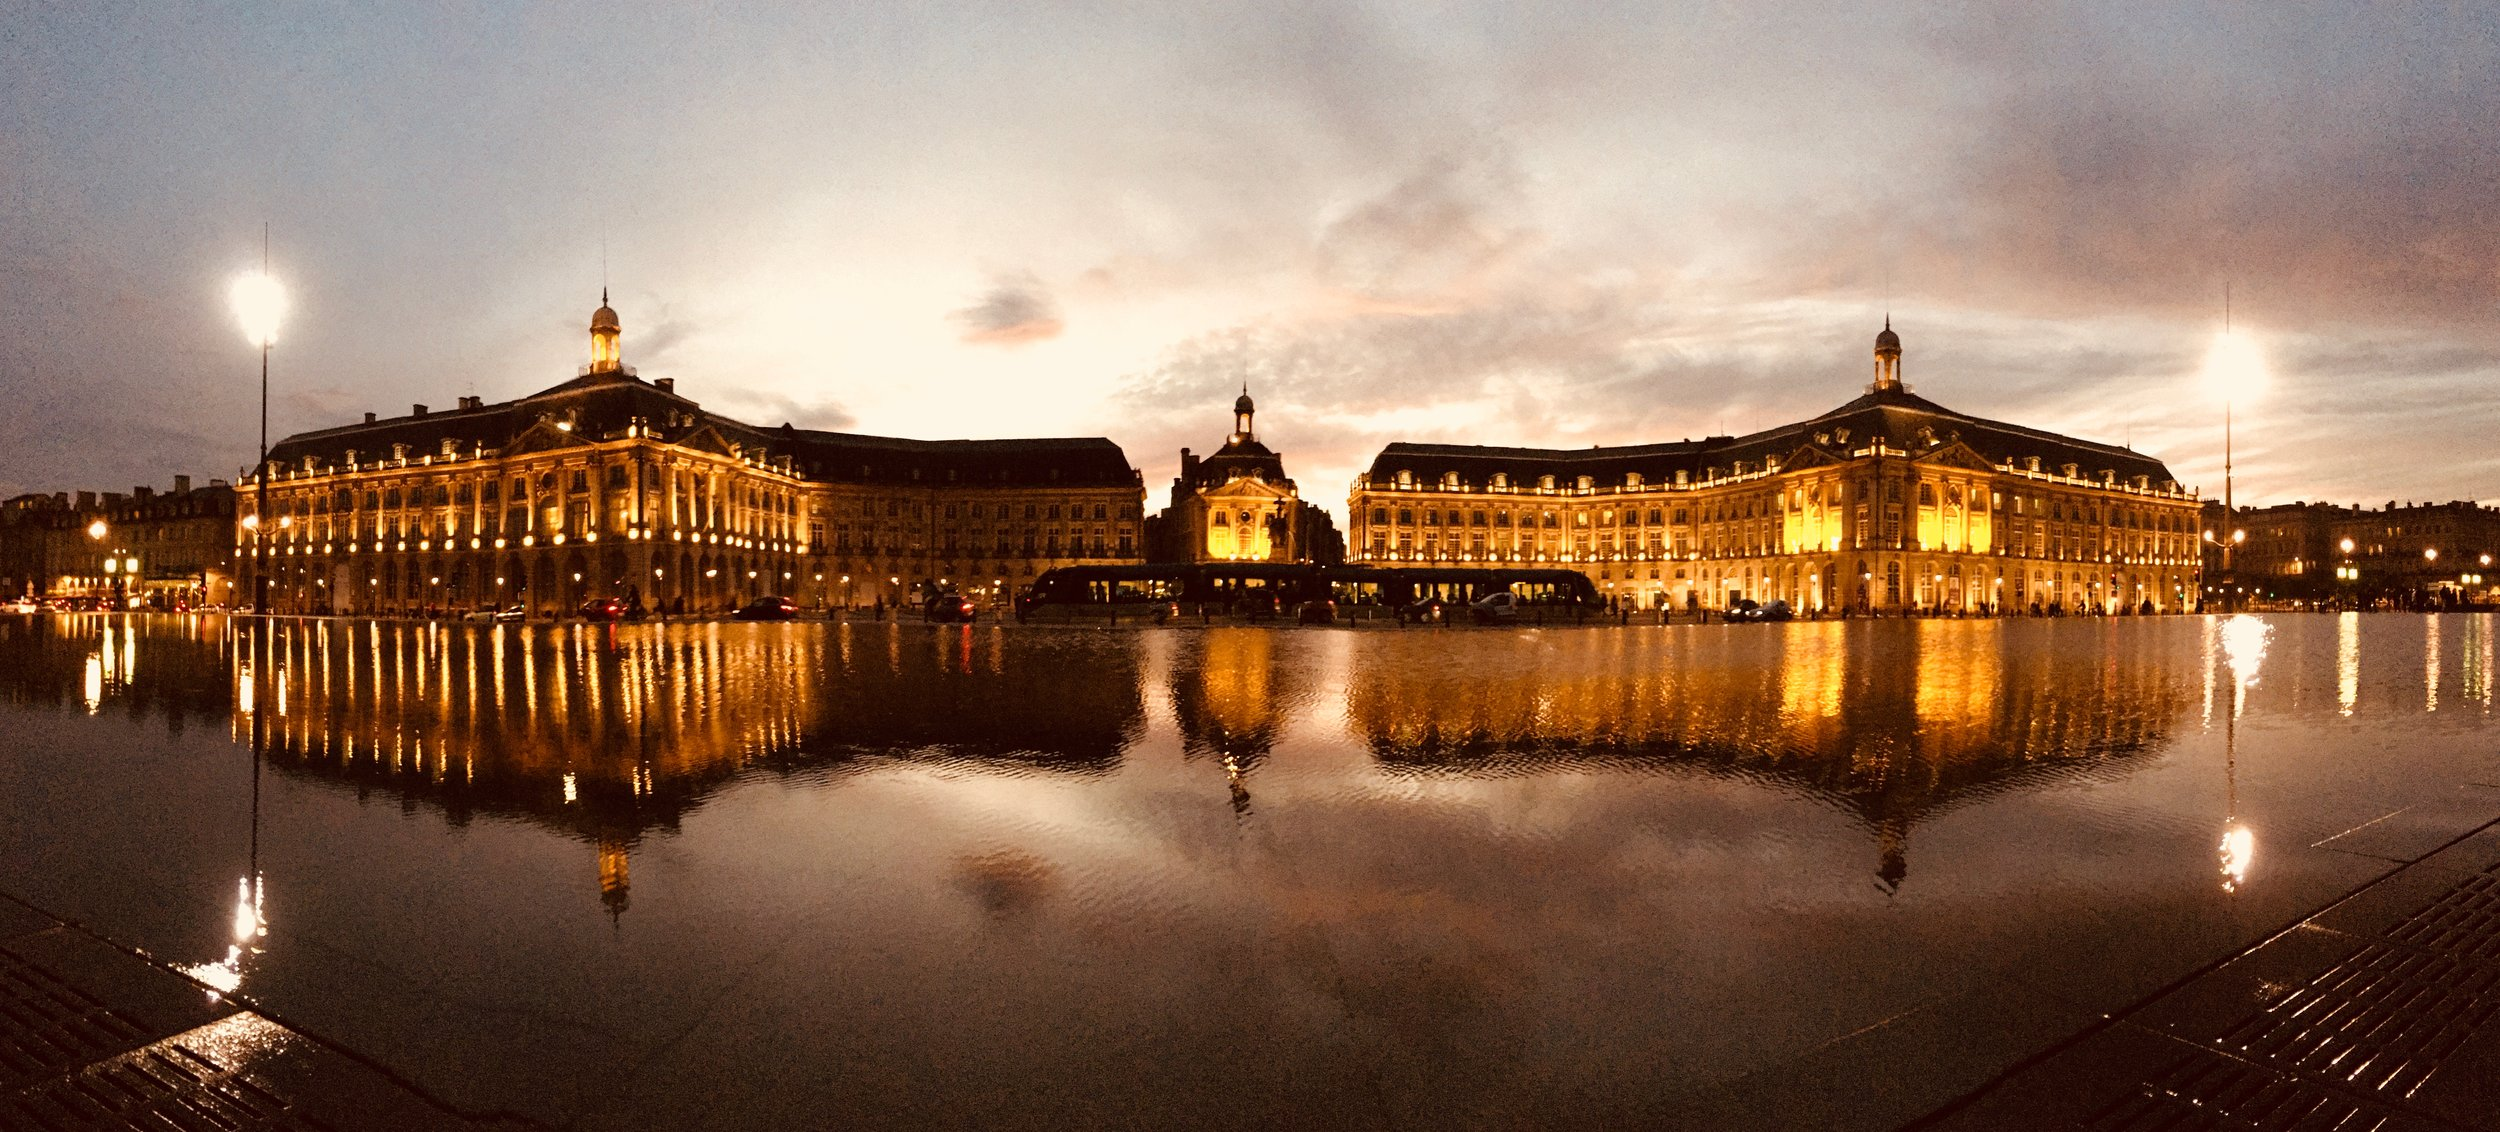 place de la bourse unesco bordeaux.jpg